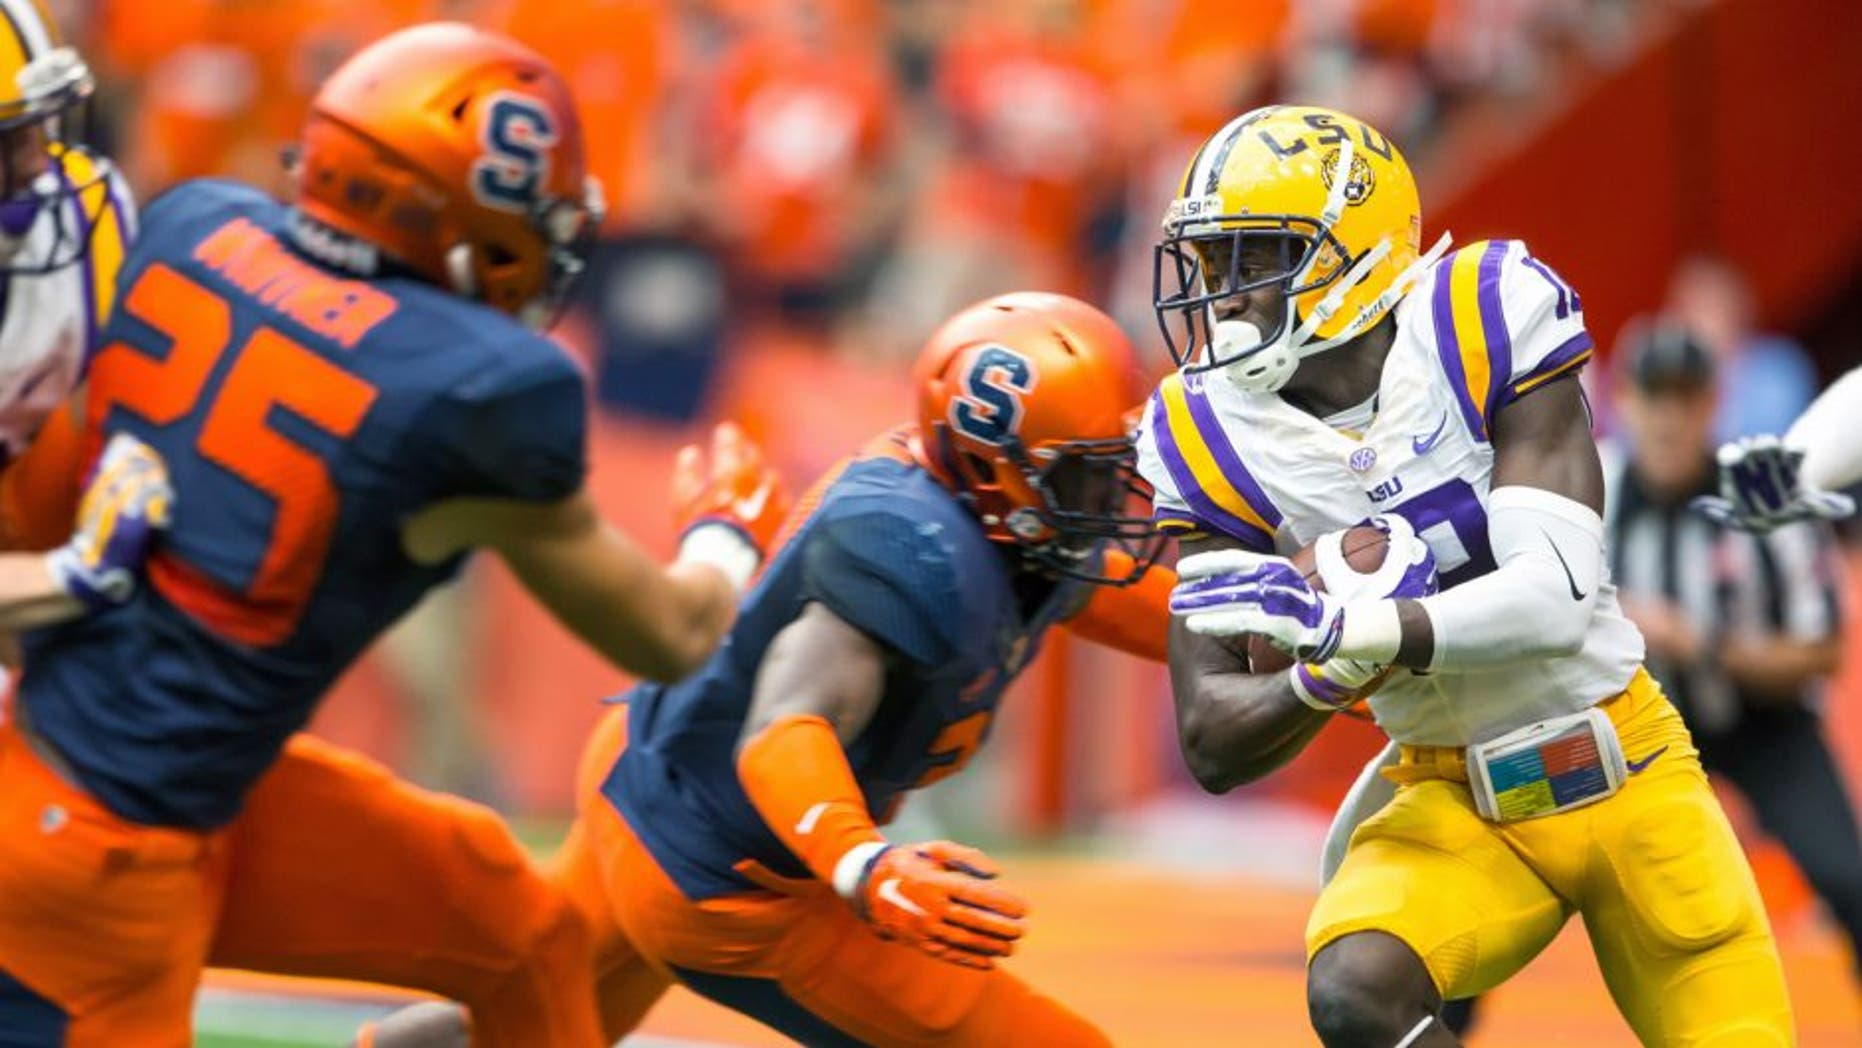 SYRACUSE, NY - SEPTEMBER 26: Tre'Davious White #18 of the LSU Tigers carries the ball during the first quarter against the Syracuse Orange on September 26, 2015 at The Carrier Dome in Syracuse, New York. (Photo by Brett Carlsen/Getty Images)